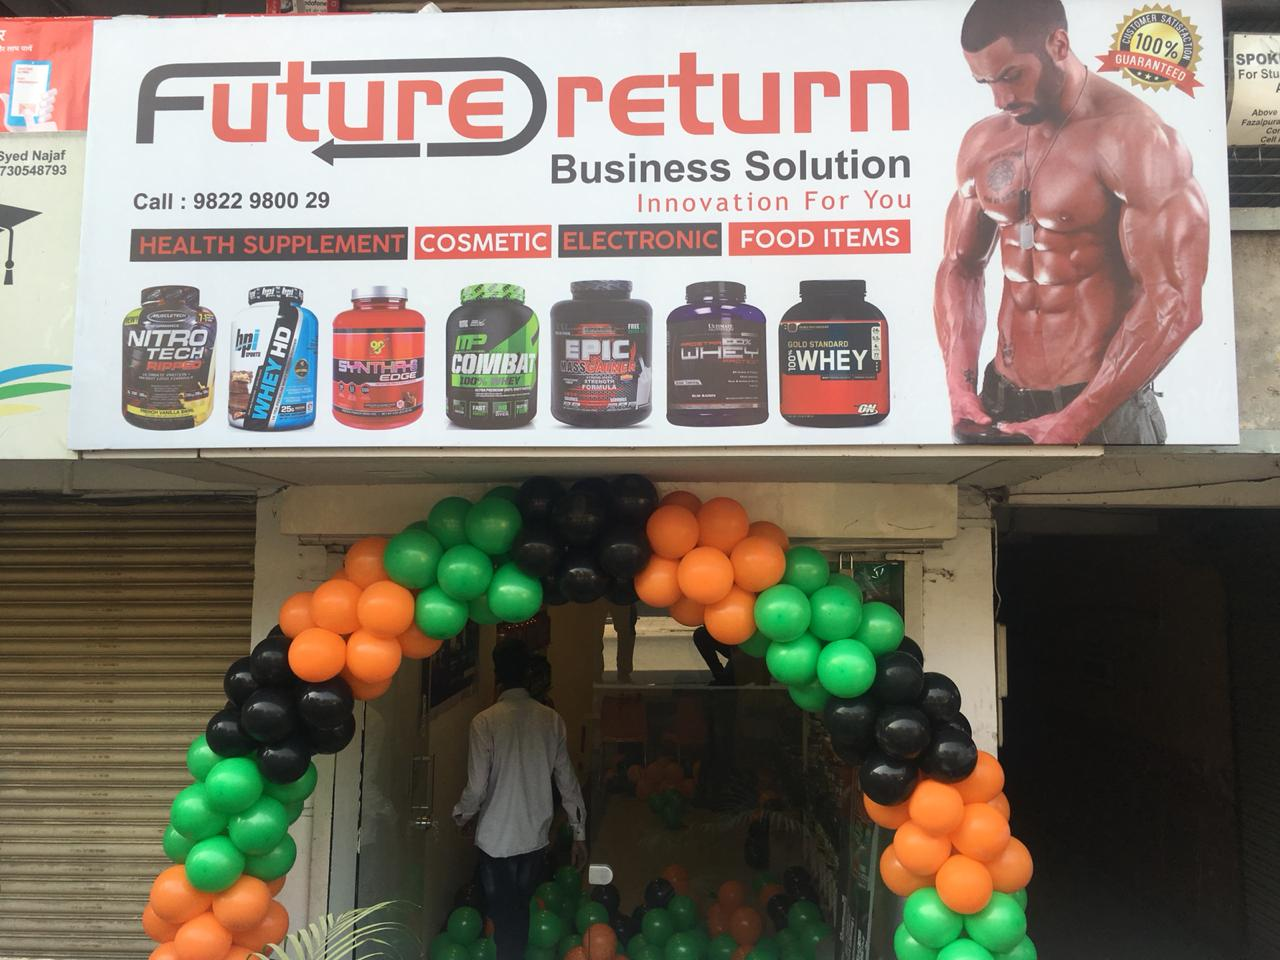 Future Return Nutrition Store